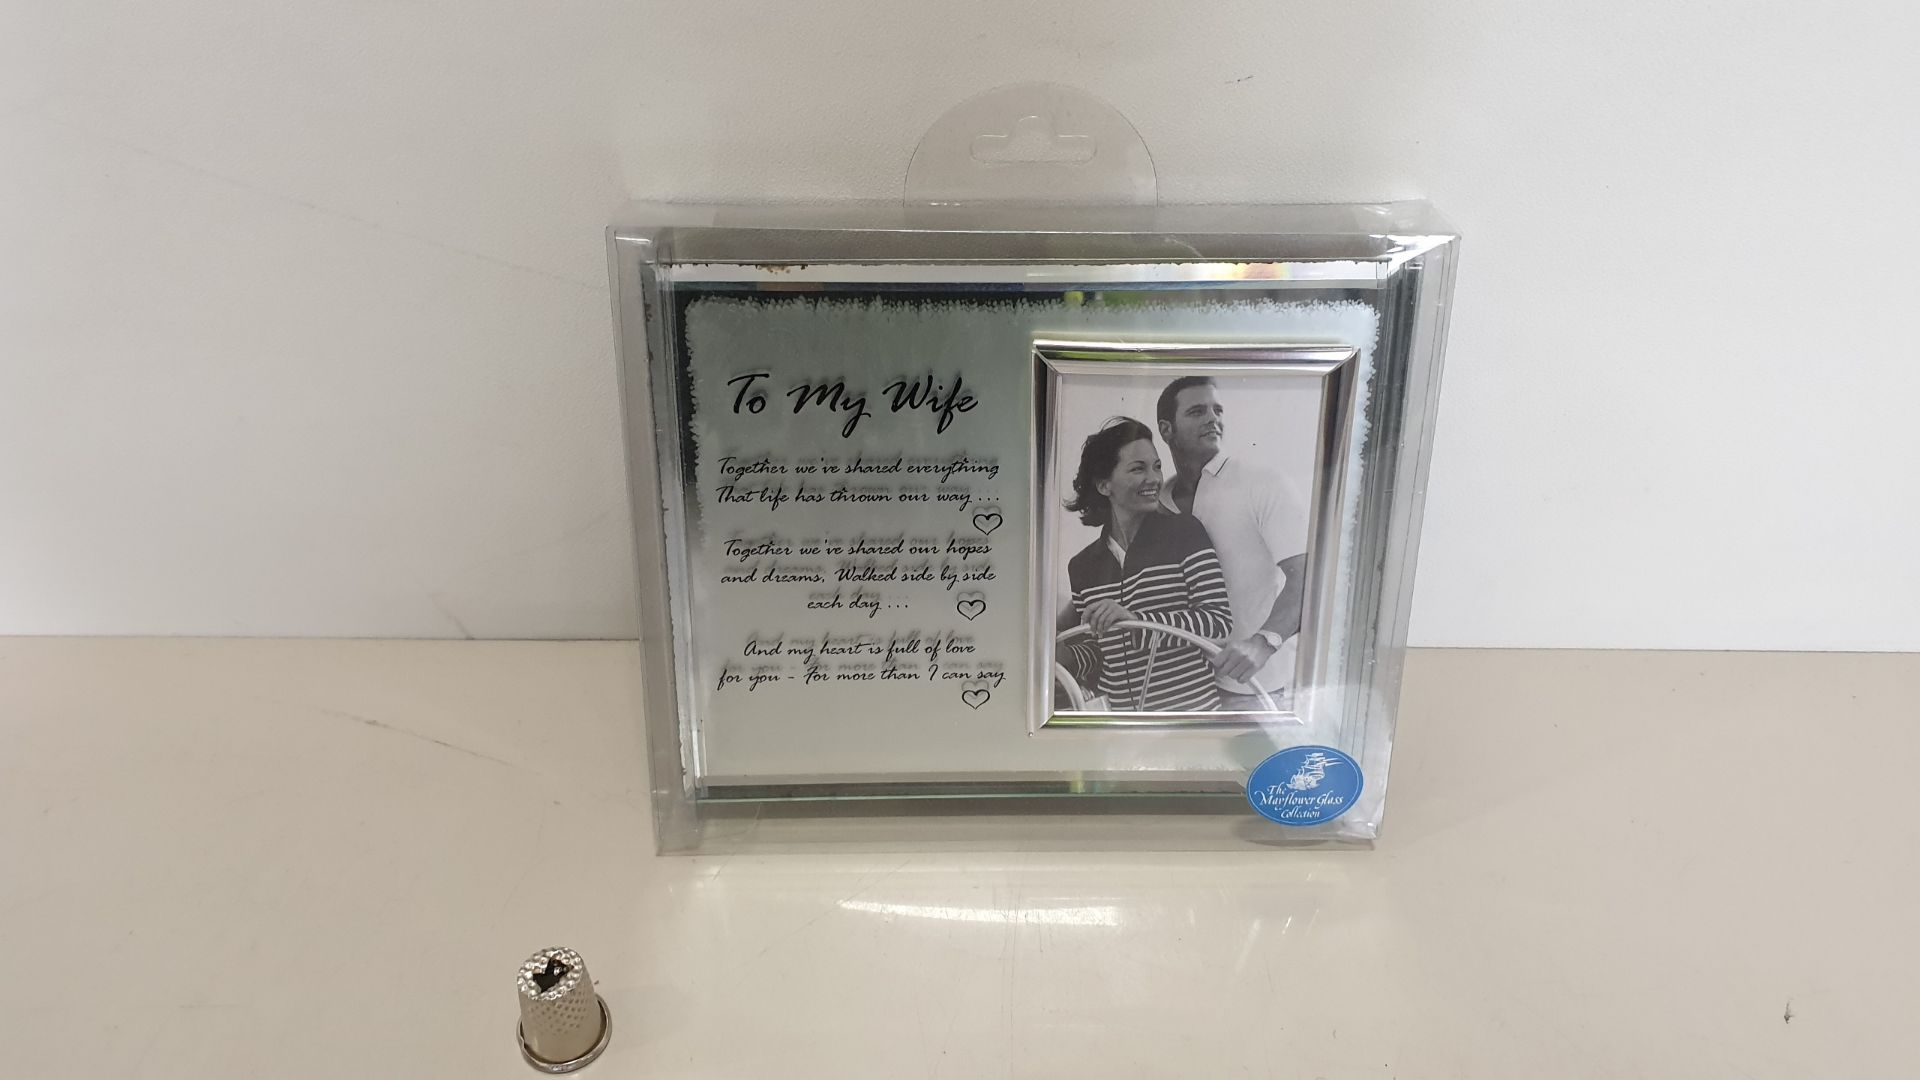 Lot 619 - 112 X BRAND NEW 'THE MAYFLOWER GLASS COLLECTION' TO MY WIFE MESSAGE FRAME - IN 2 BOXES AND 16 LOOSE